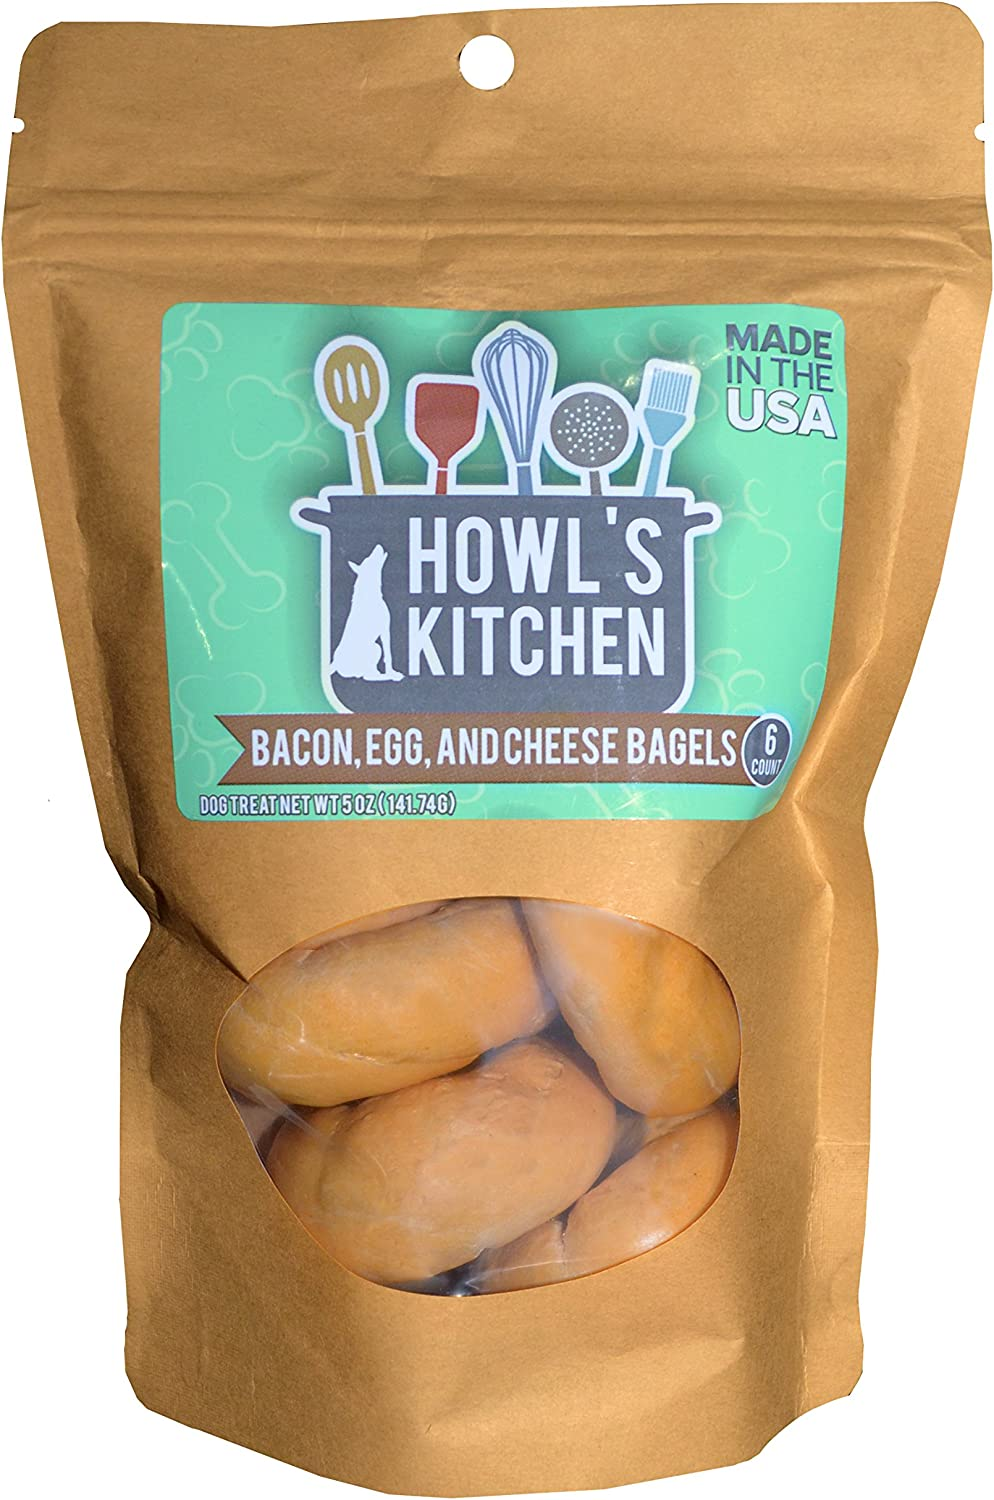 Howl's Kitchen Bagels Bacon